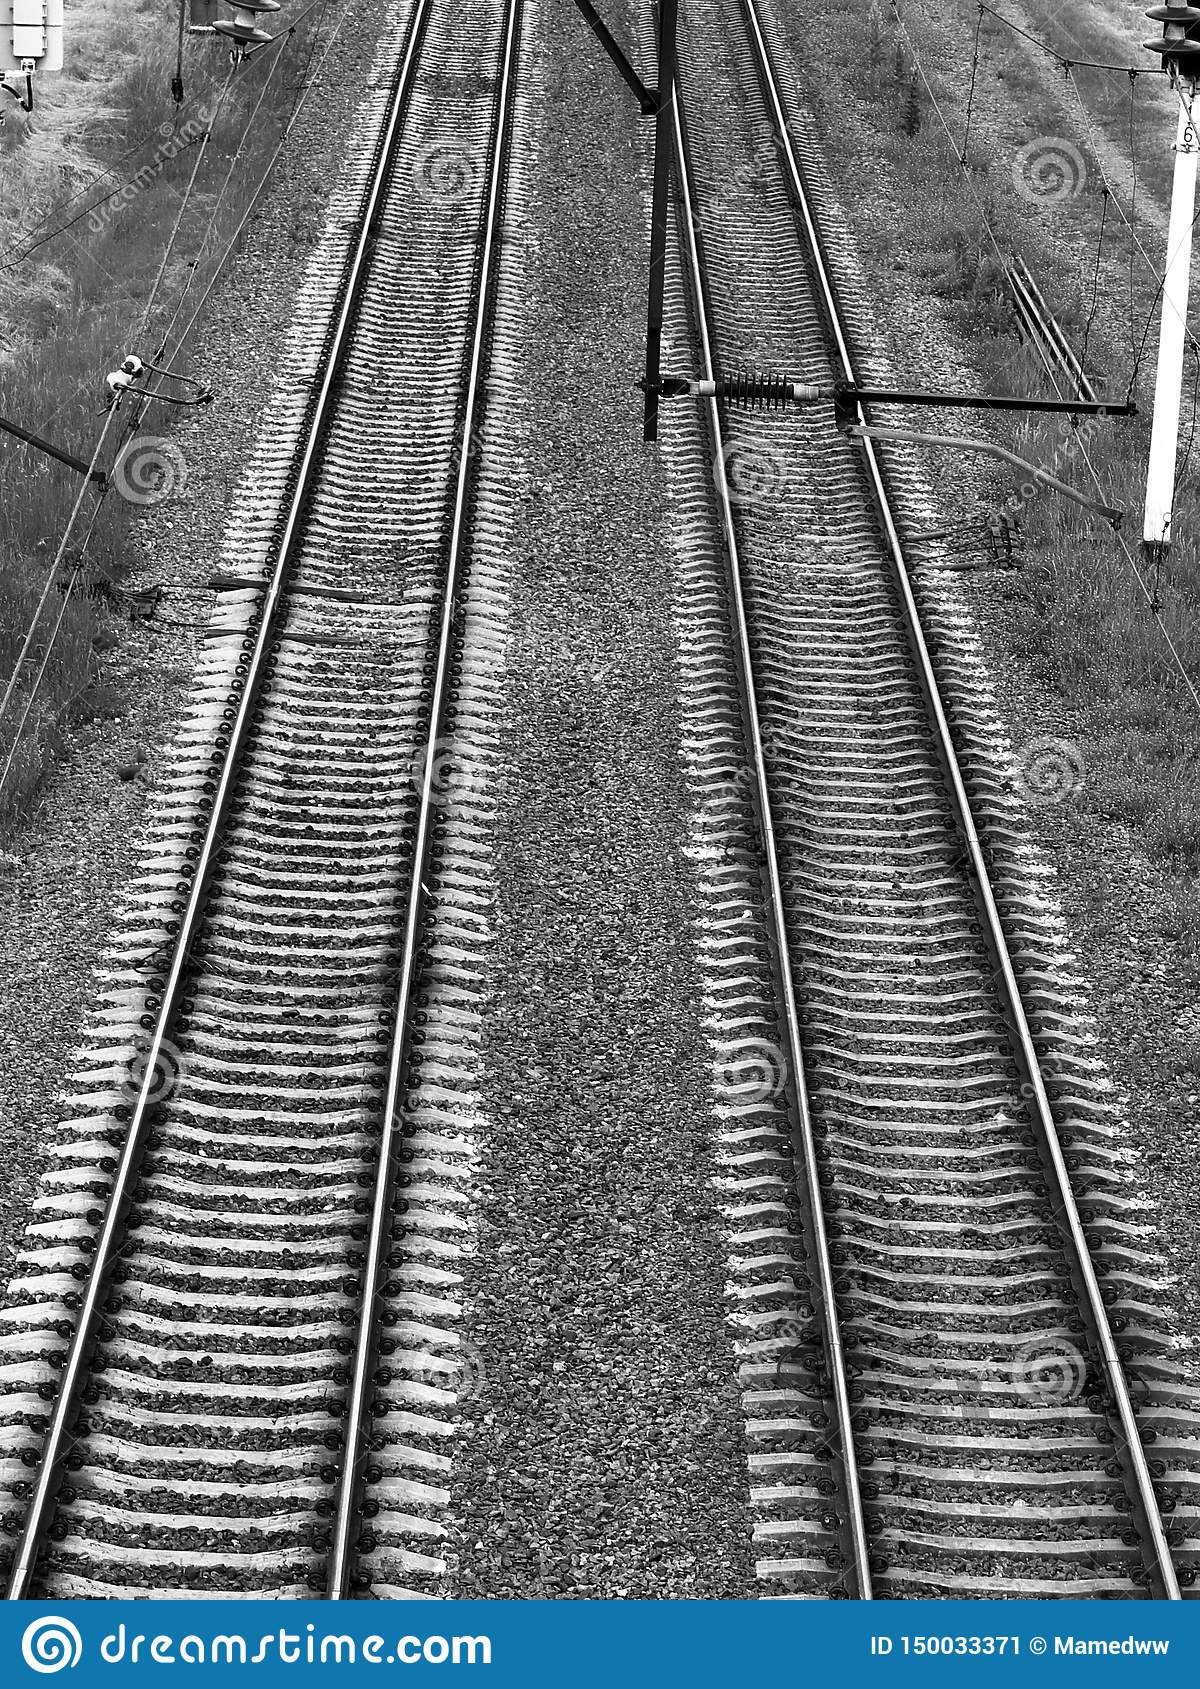 Railroad tracks black gloomy atmosphere